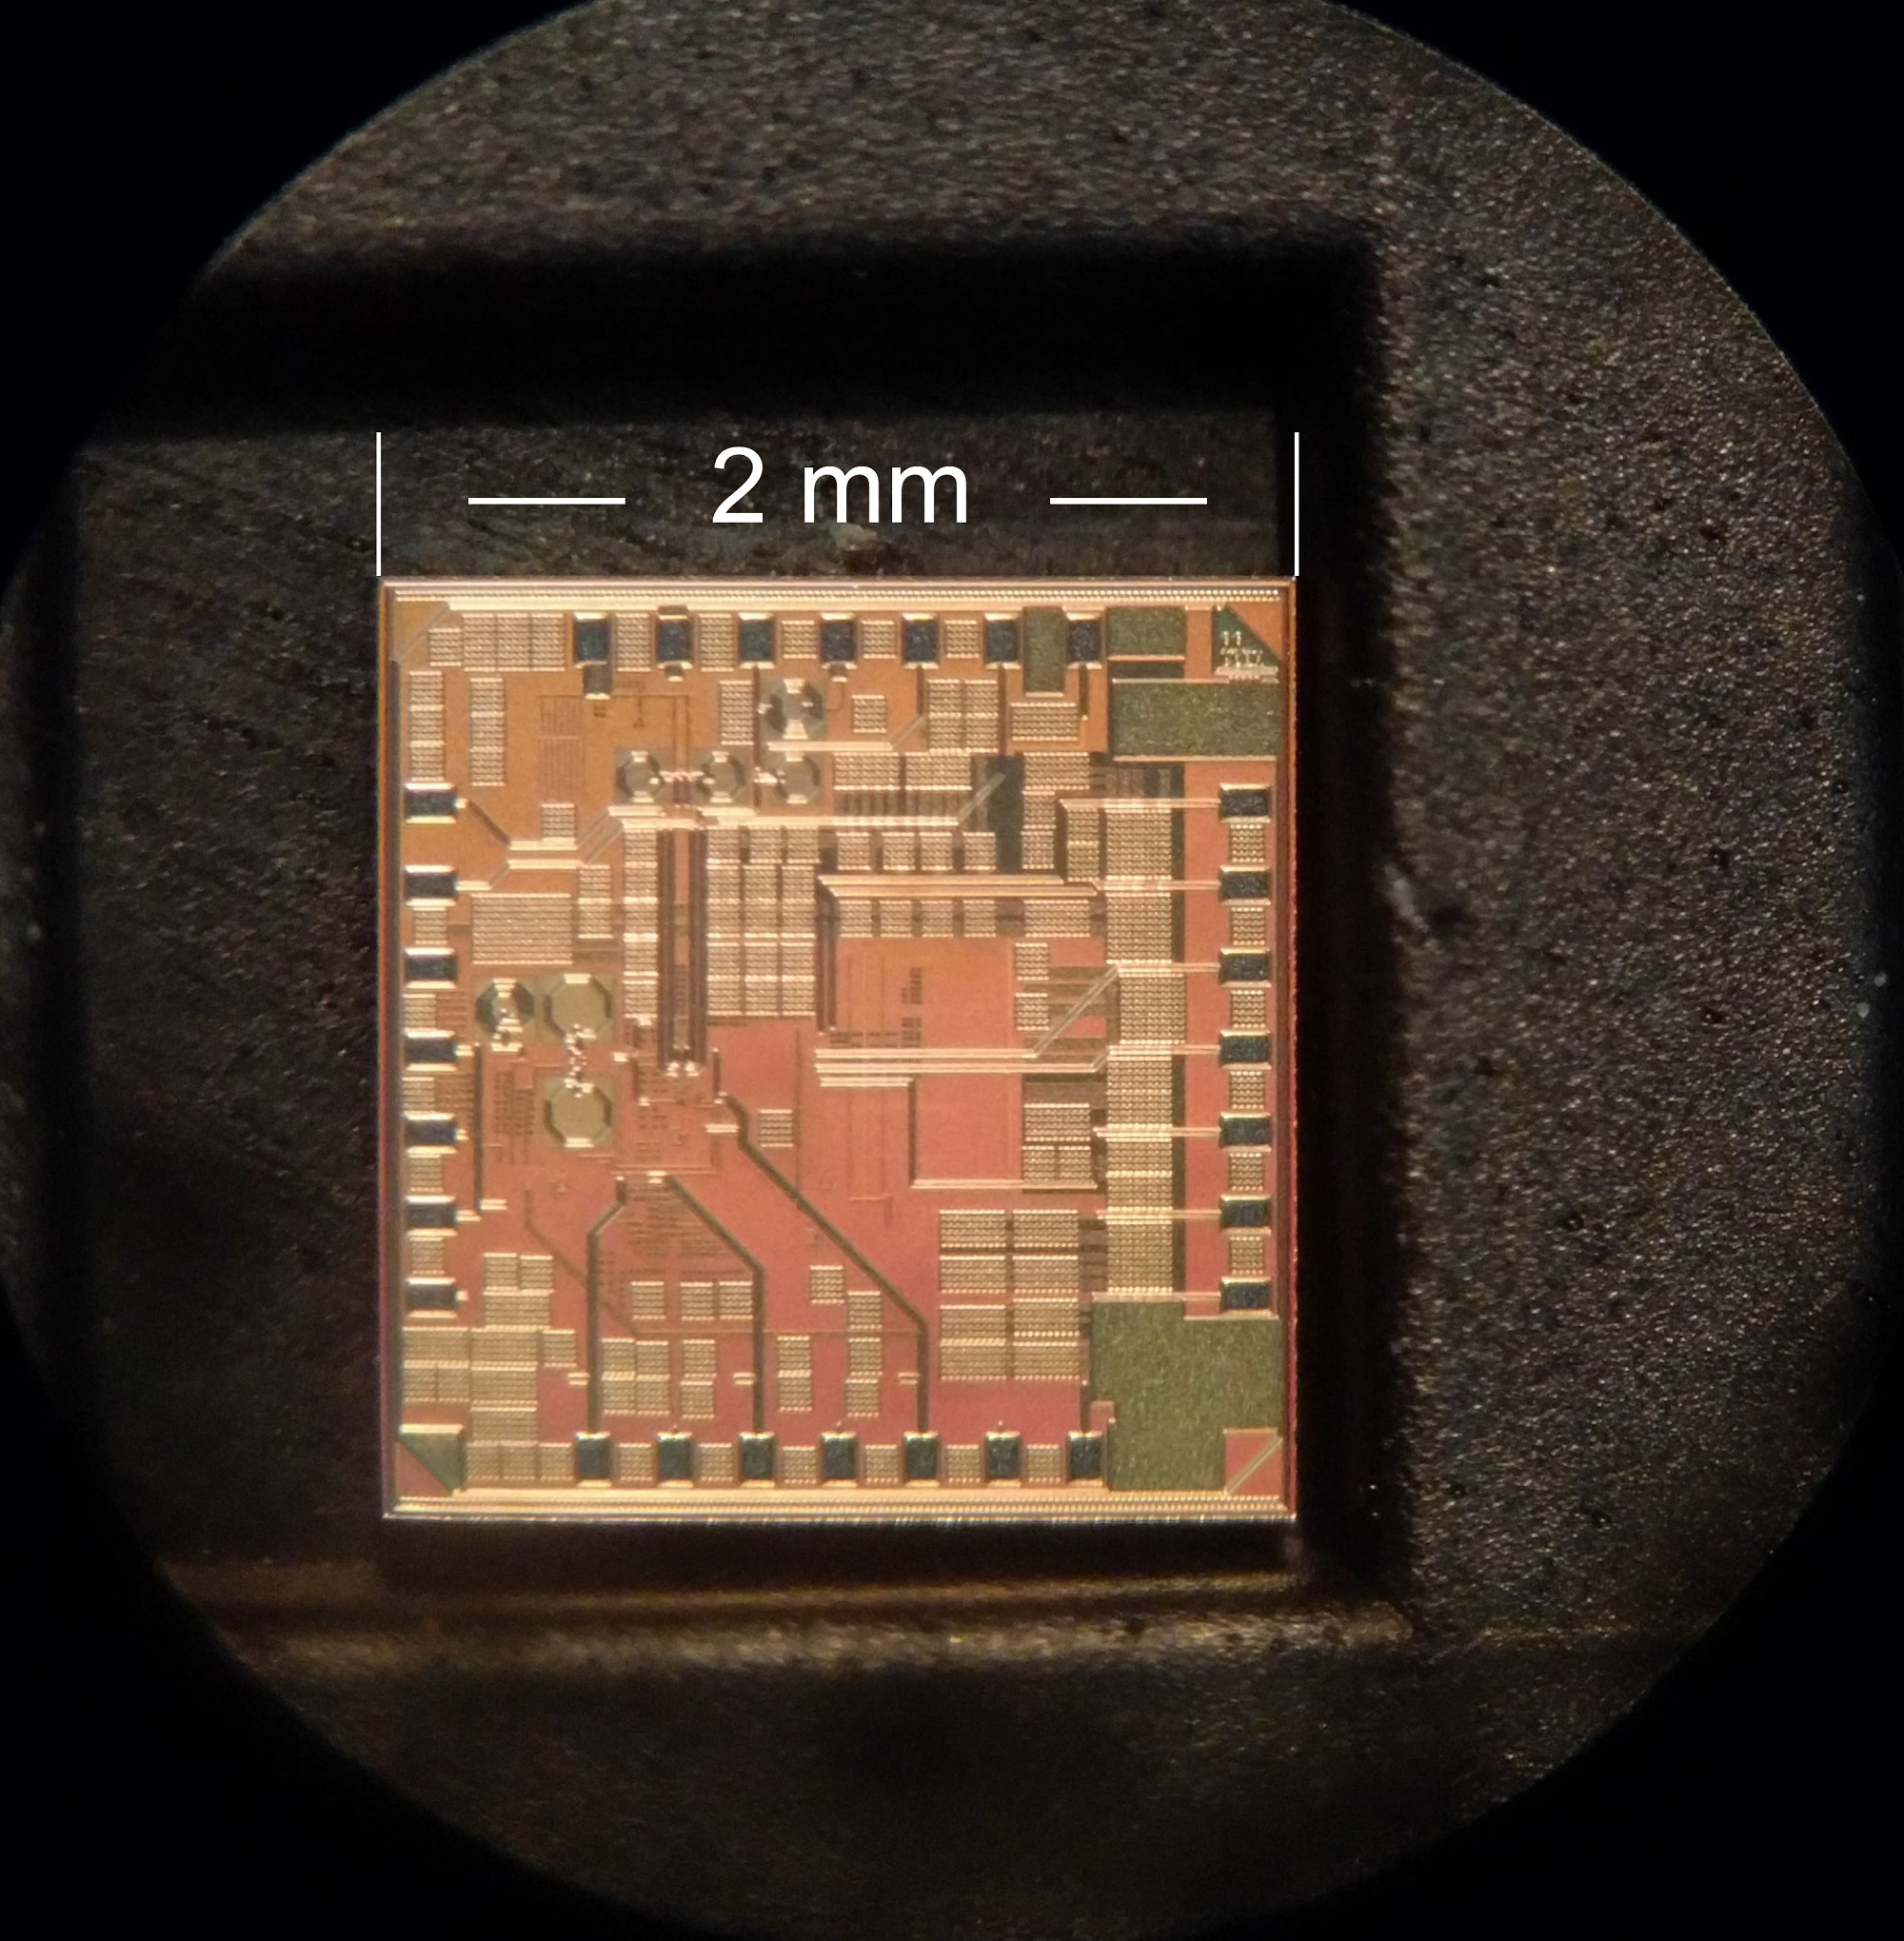 Fig. 2. Photo of the fabricated chip